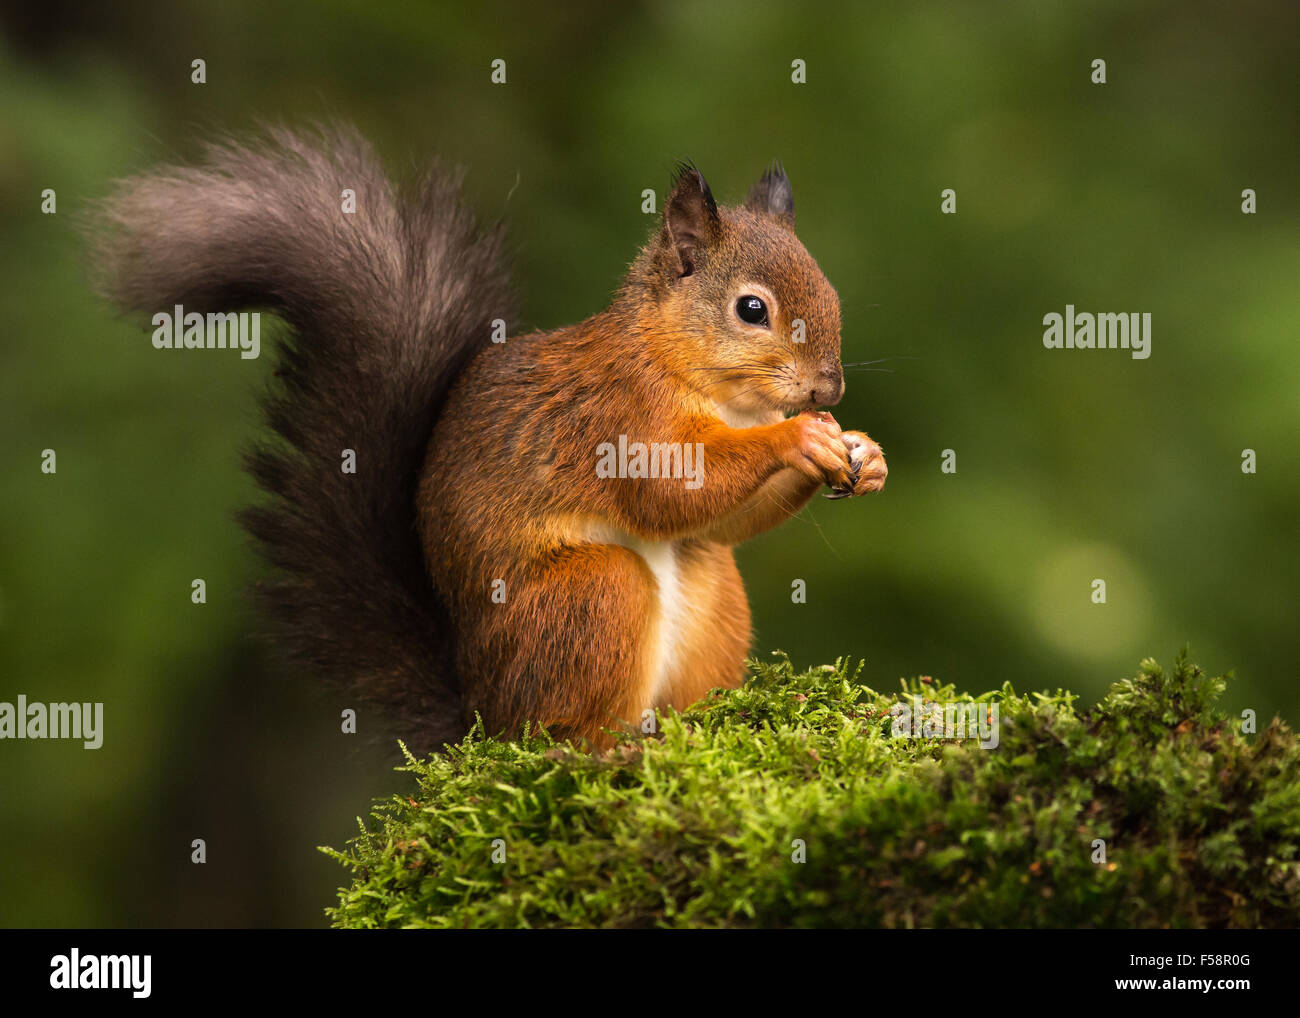 Red Squirrel on Moss Stock Photo